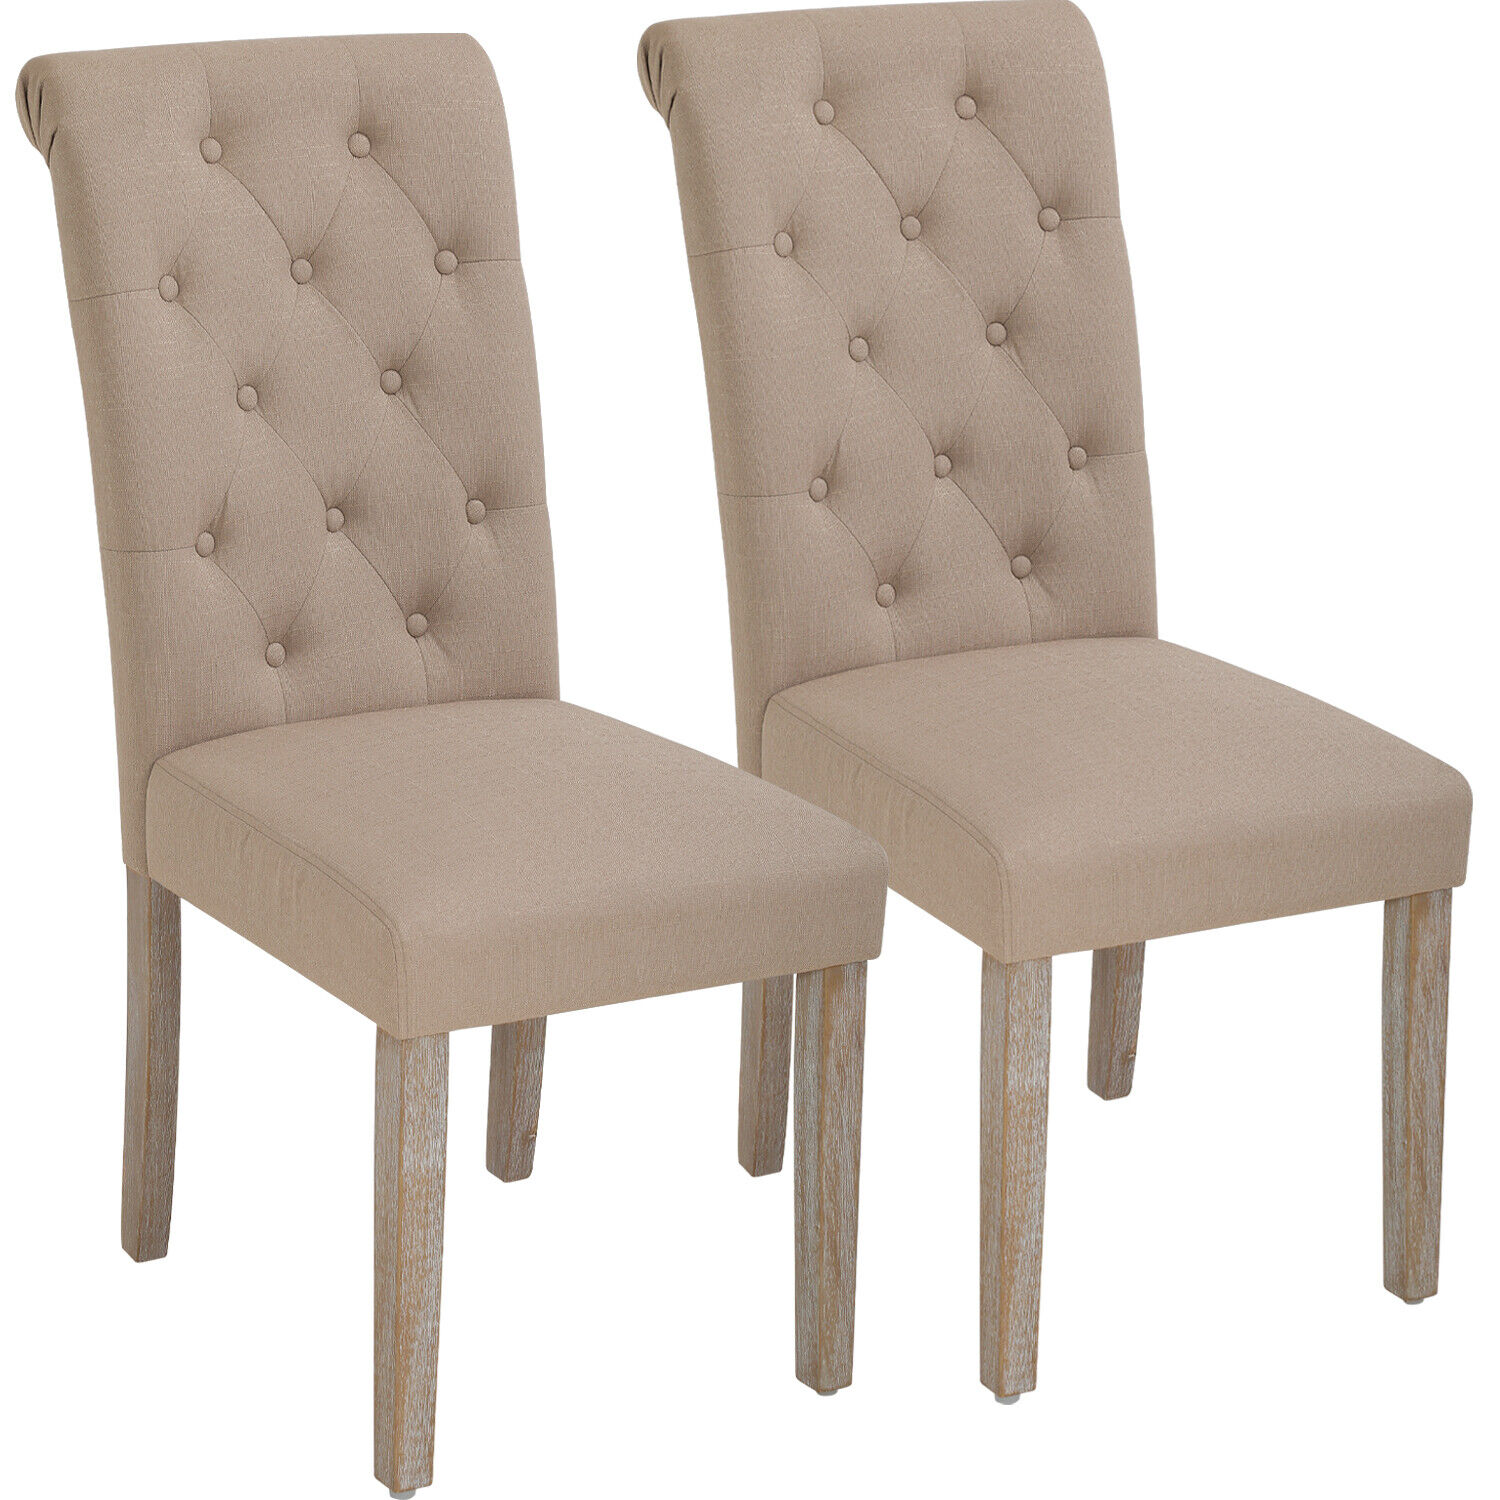 Dining Chairs Set of 2 Chairs for Living Room Dining Room Chair Dining Table